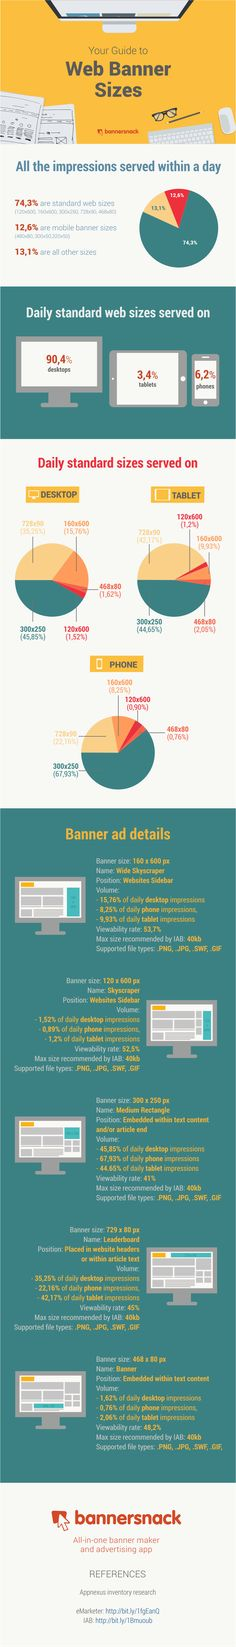 Infographic: Your guide to web banner ad sizes